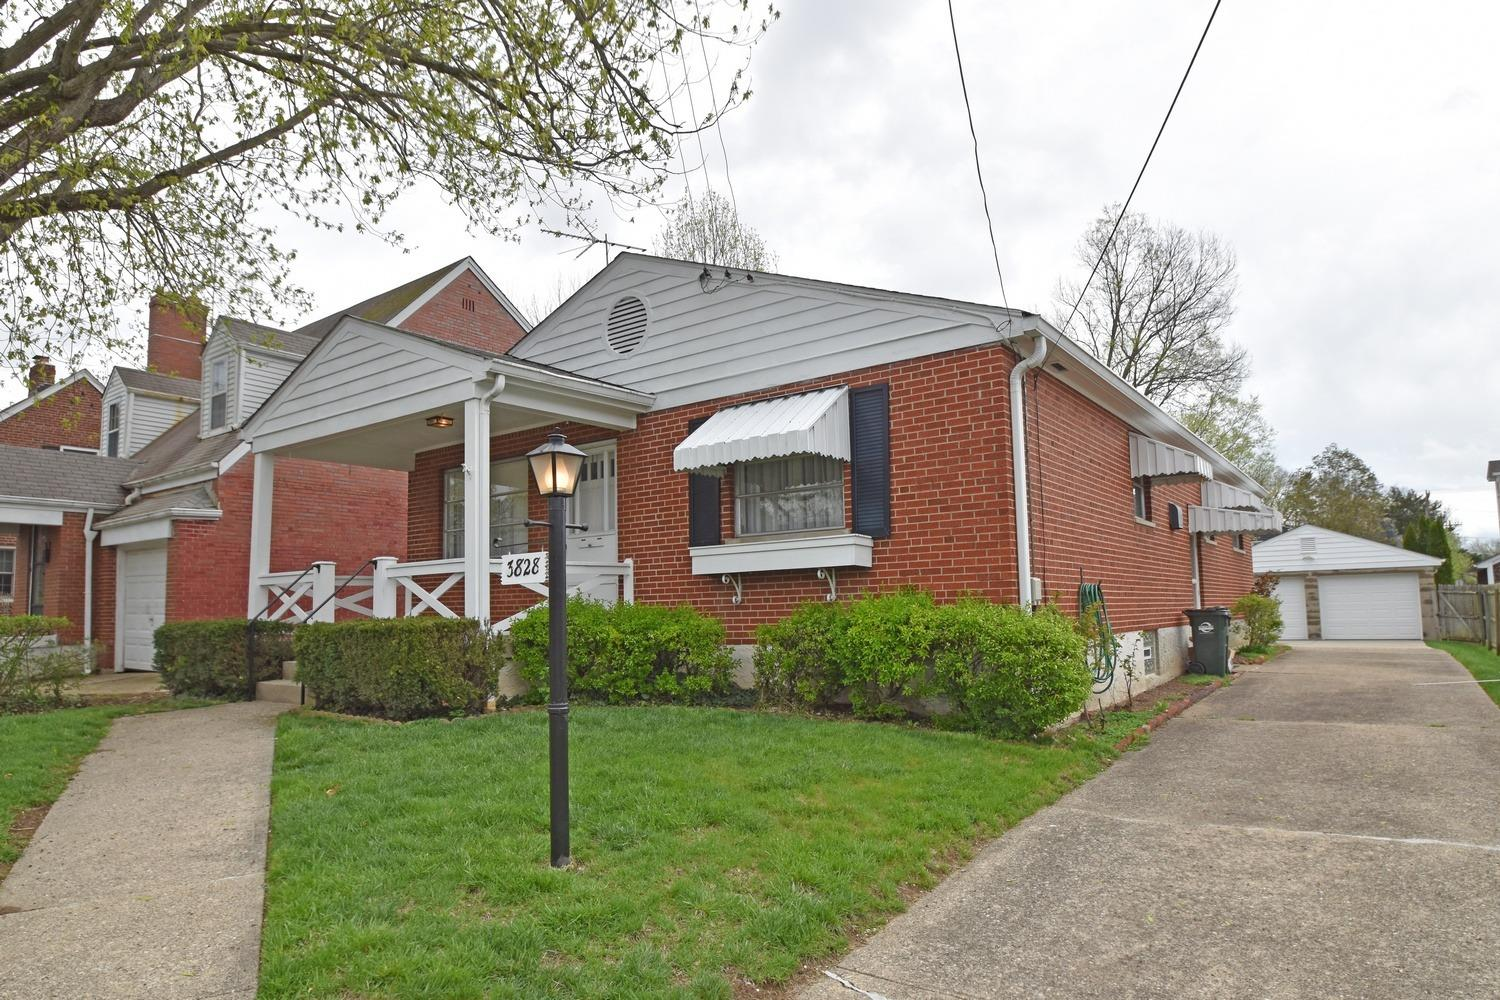 Photo 2 for 3828 Petoskey Ave Mariemont, OH 45227